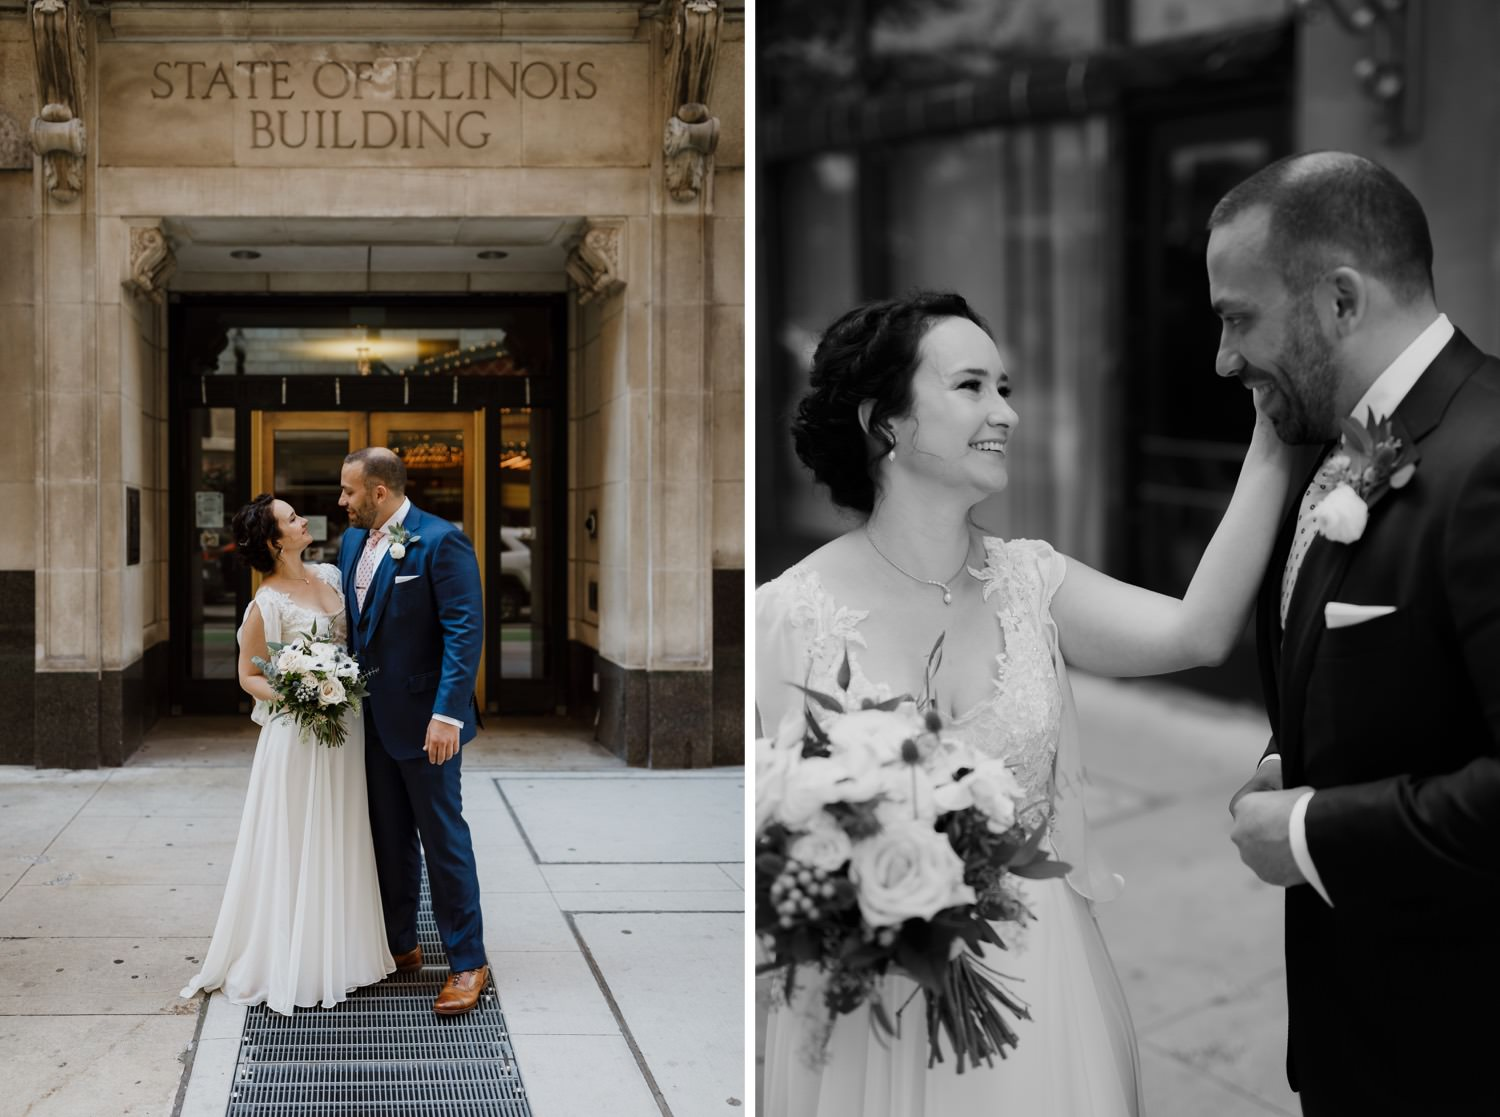 Intimate moment between bride and groom during the wedding in downtown Chicago